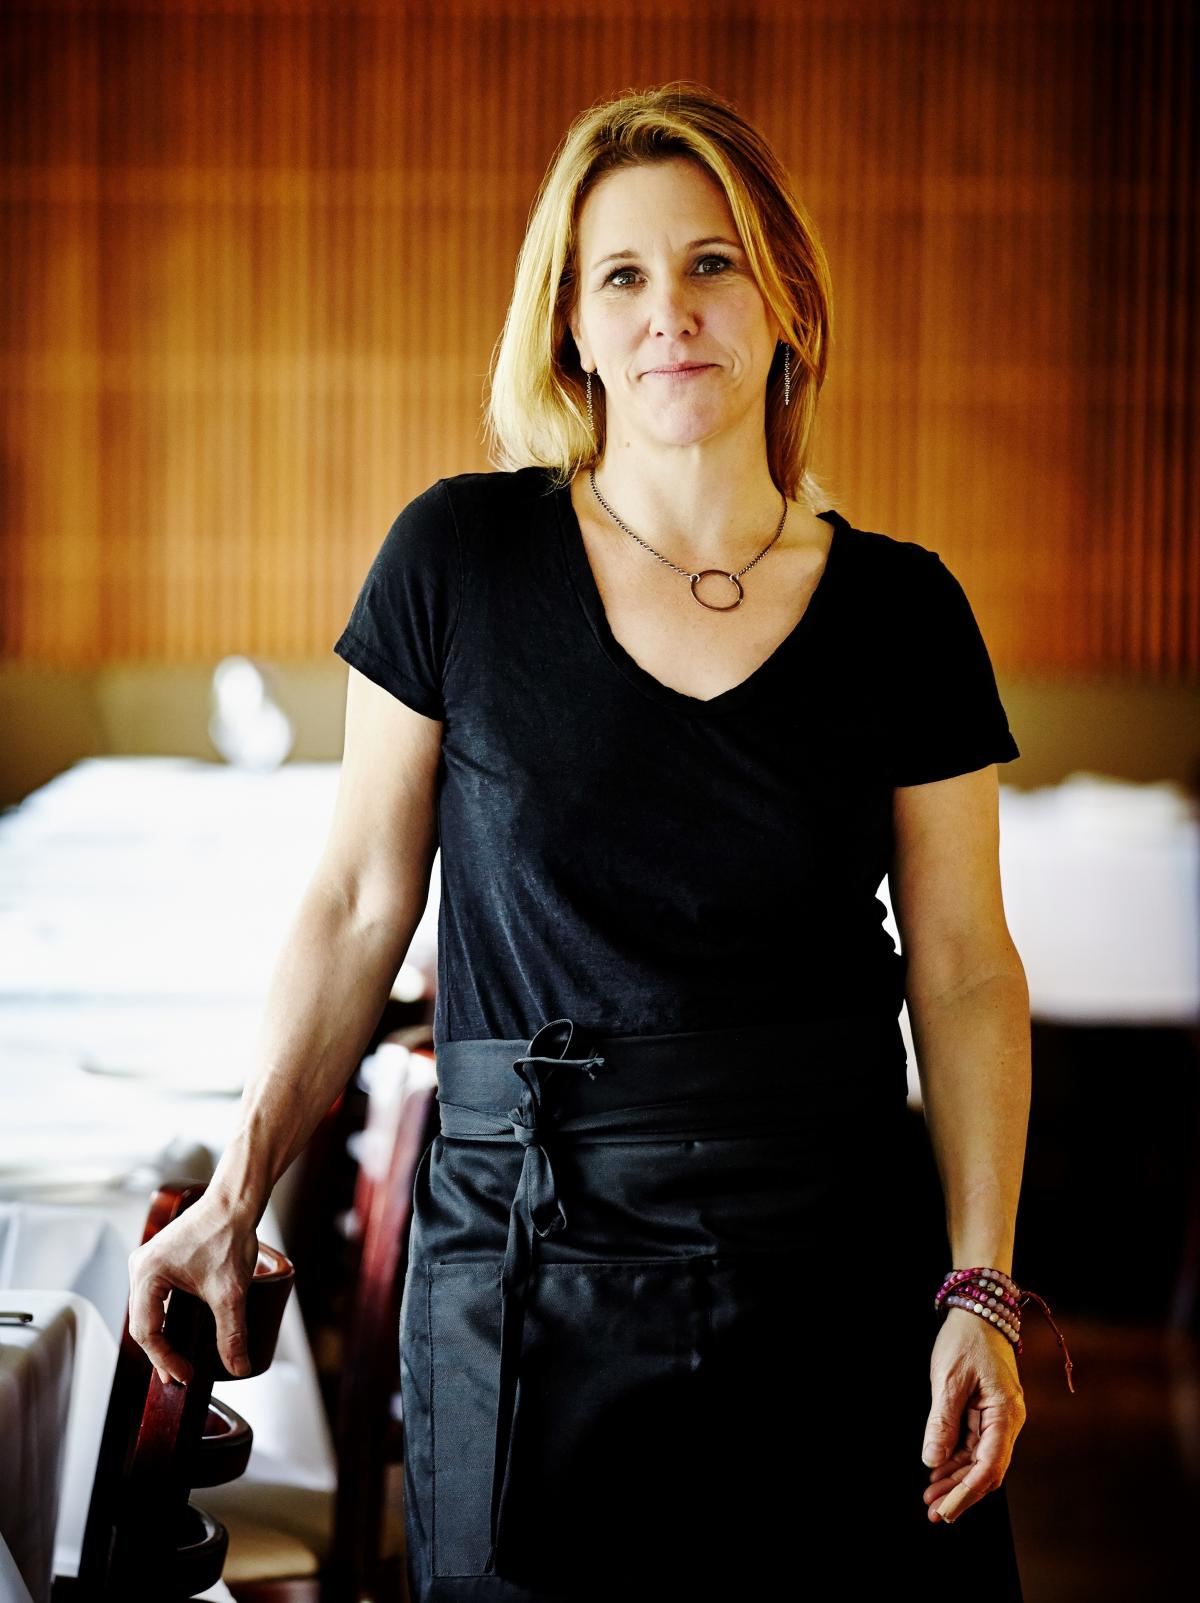 Holly Smith, chef and owner of Cafe Juanita in Kirkland, Wash., says she will not reopen her restaurant to diners until all of her staff have gotten the COVID-19 vaccination.